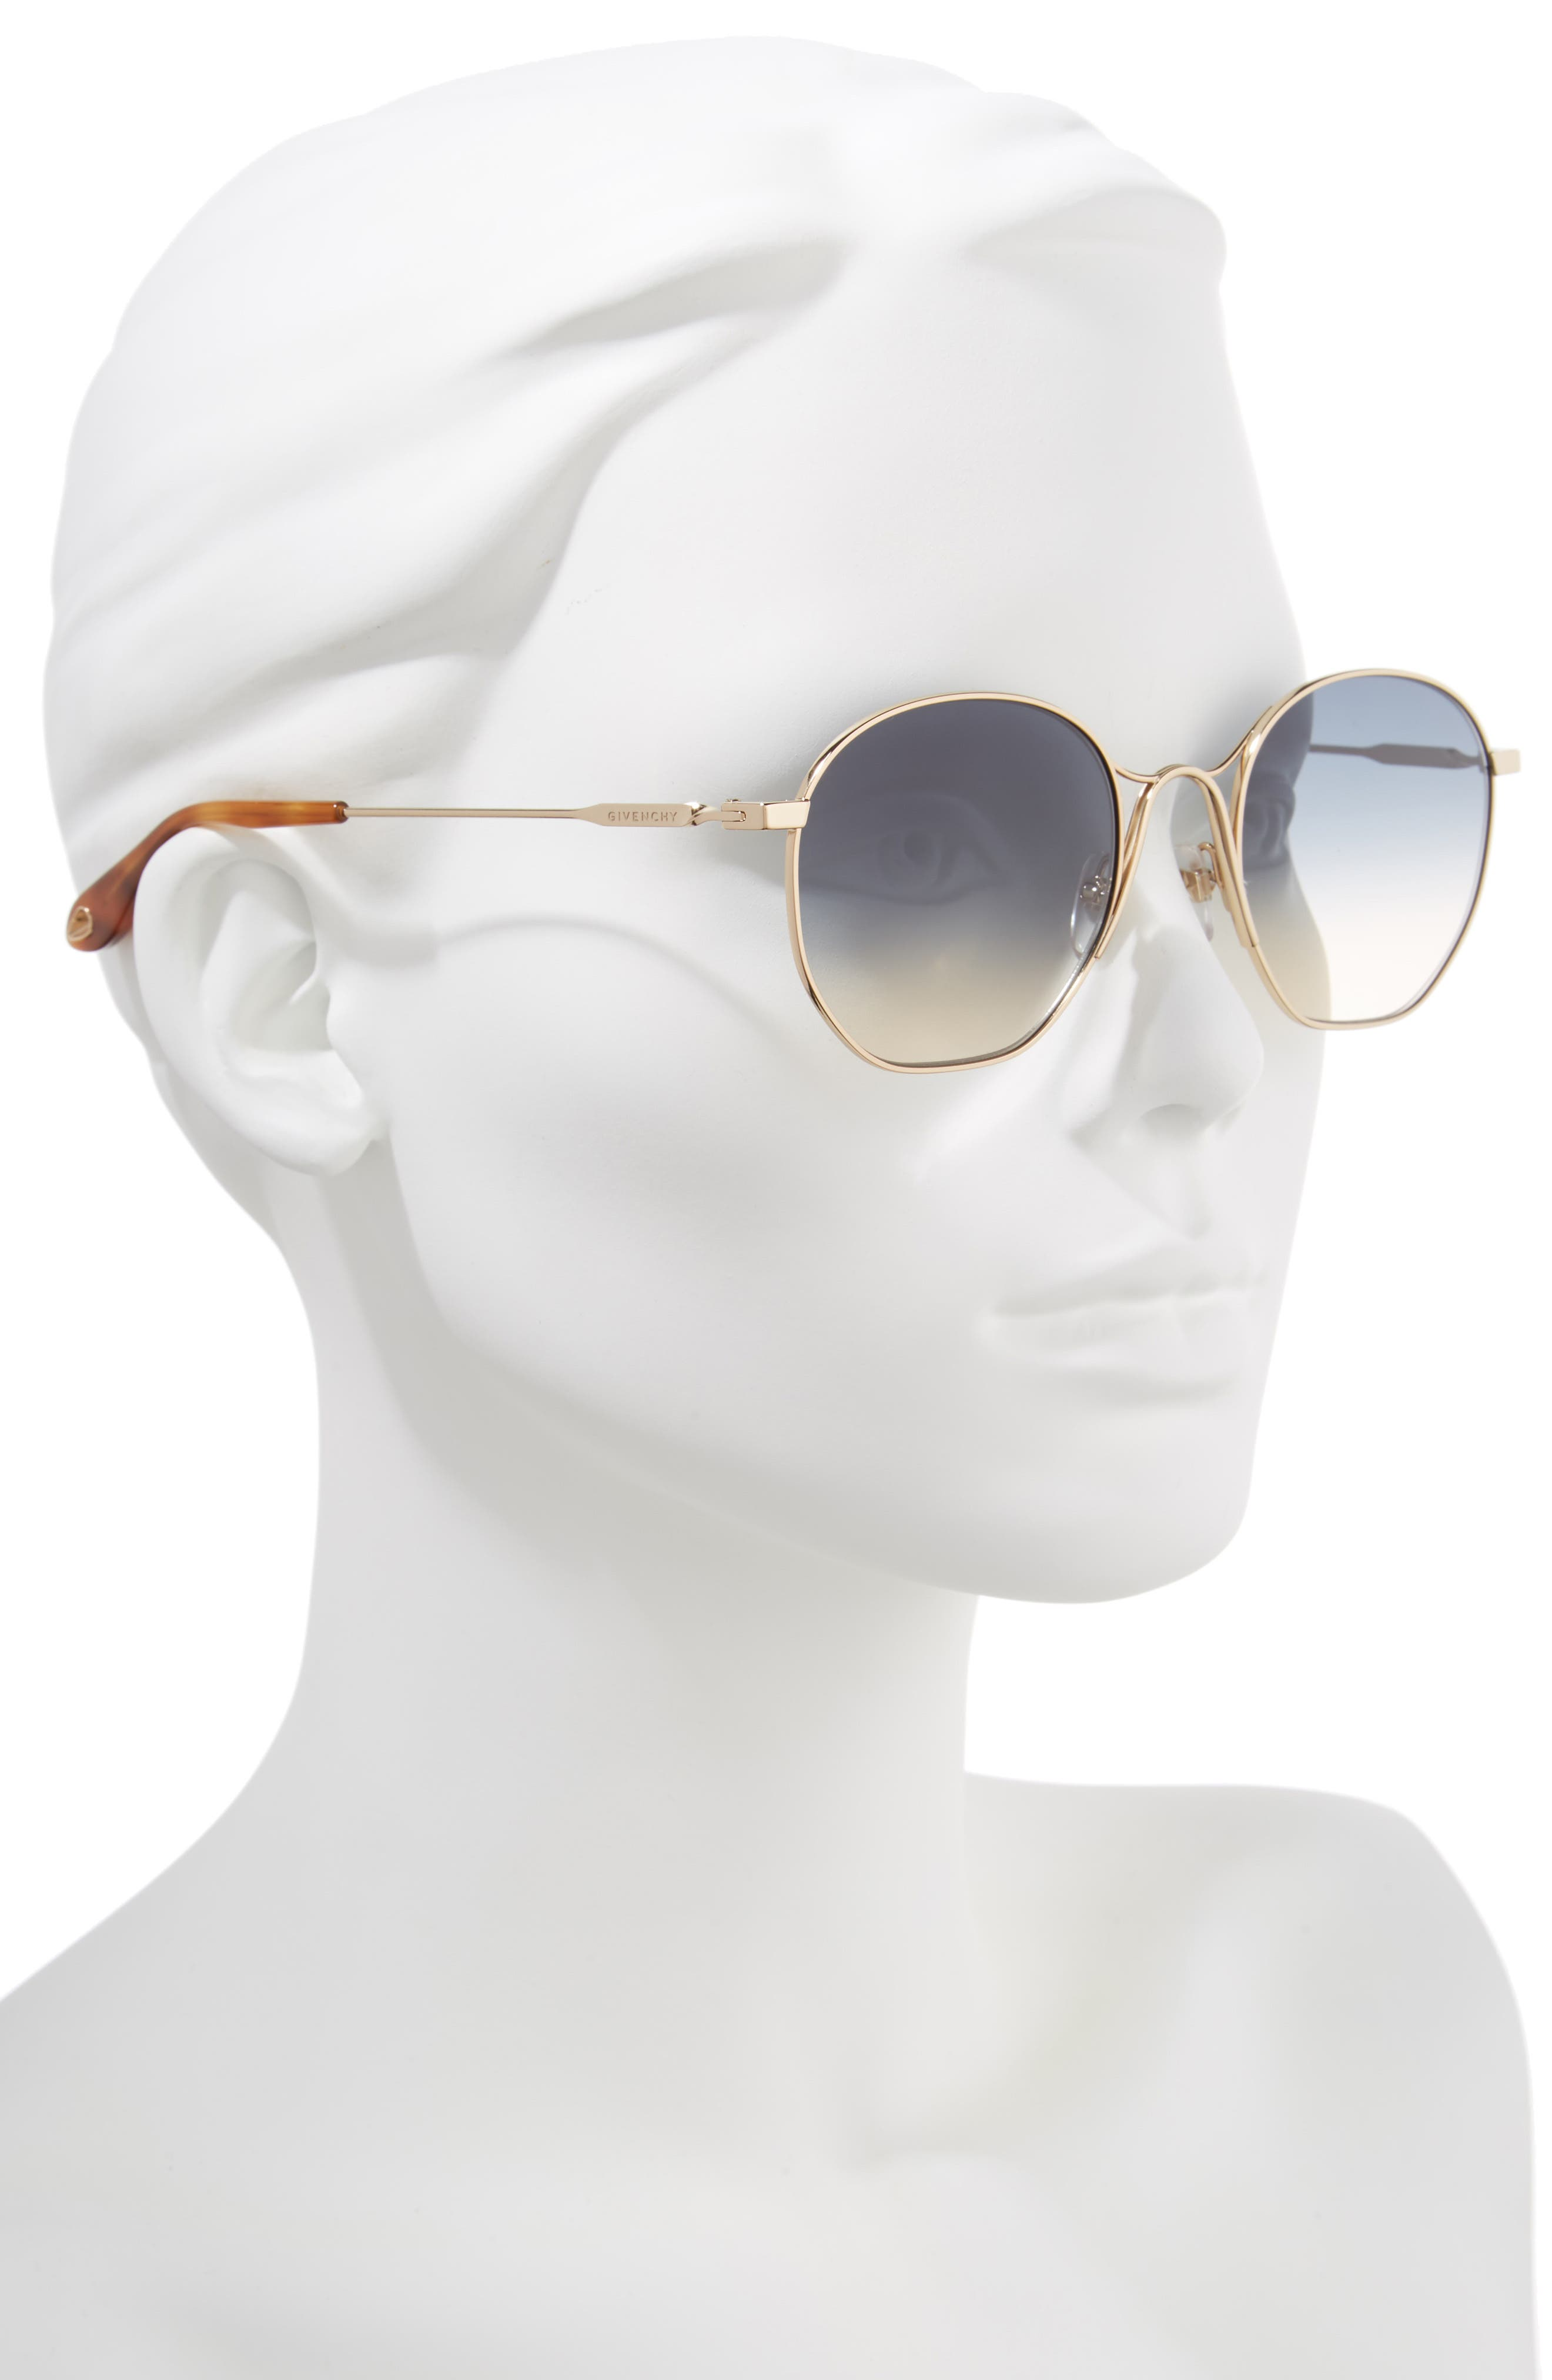 53mm Squared Round Metal Sunglasses,                             Alternate thumbnail 2, color,                             GOLD